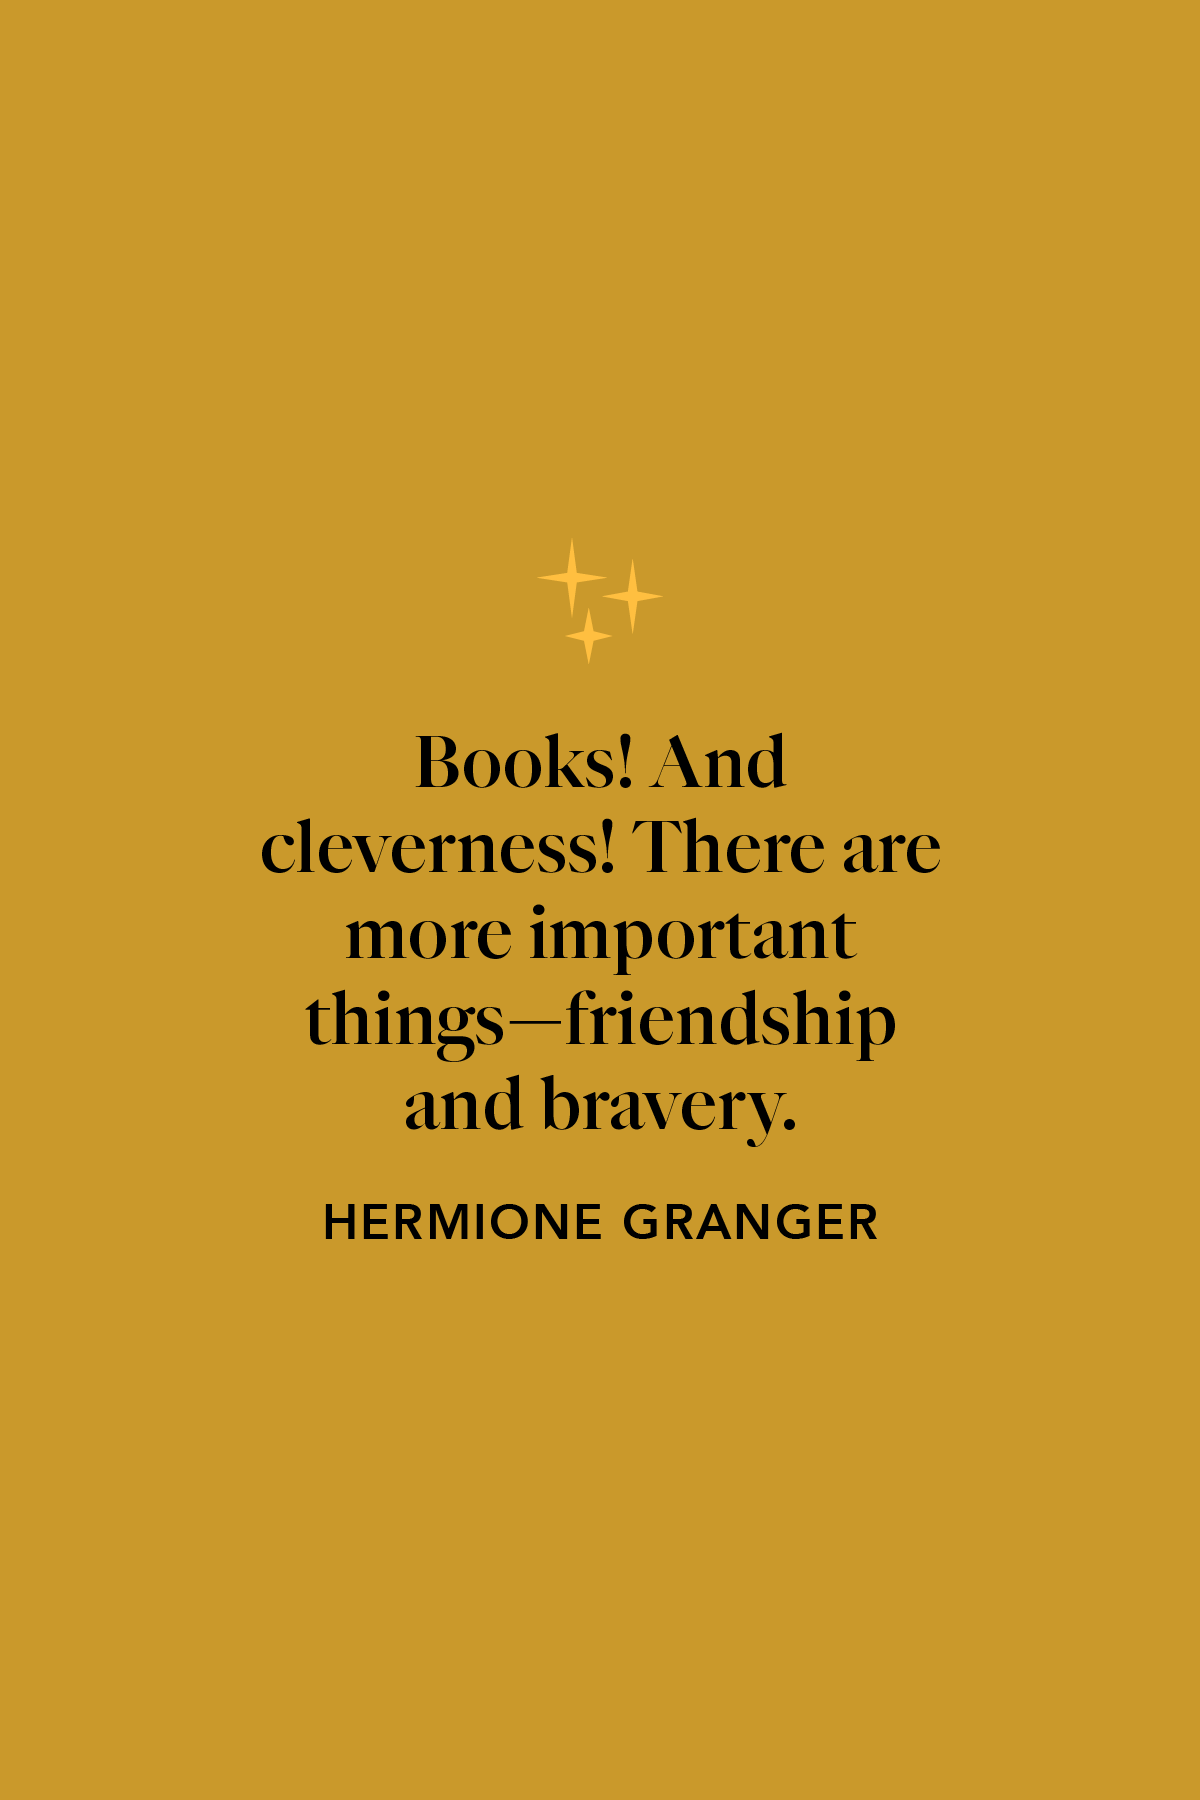 Best Quotes From Books And Movies : quotes, books, movies, Inspiring, Harry, Potter, Quotes, Dumbledore,, Hermione,